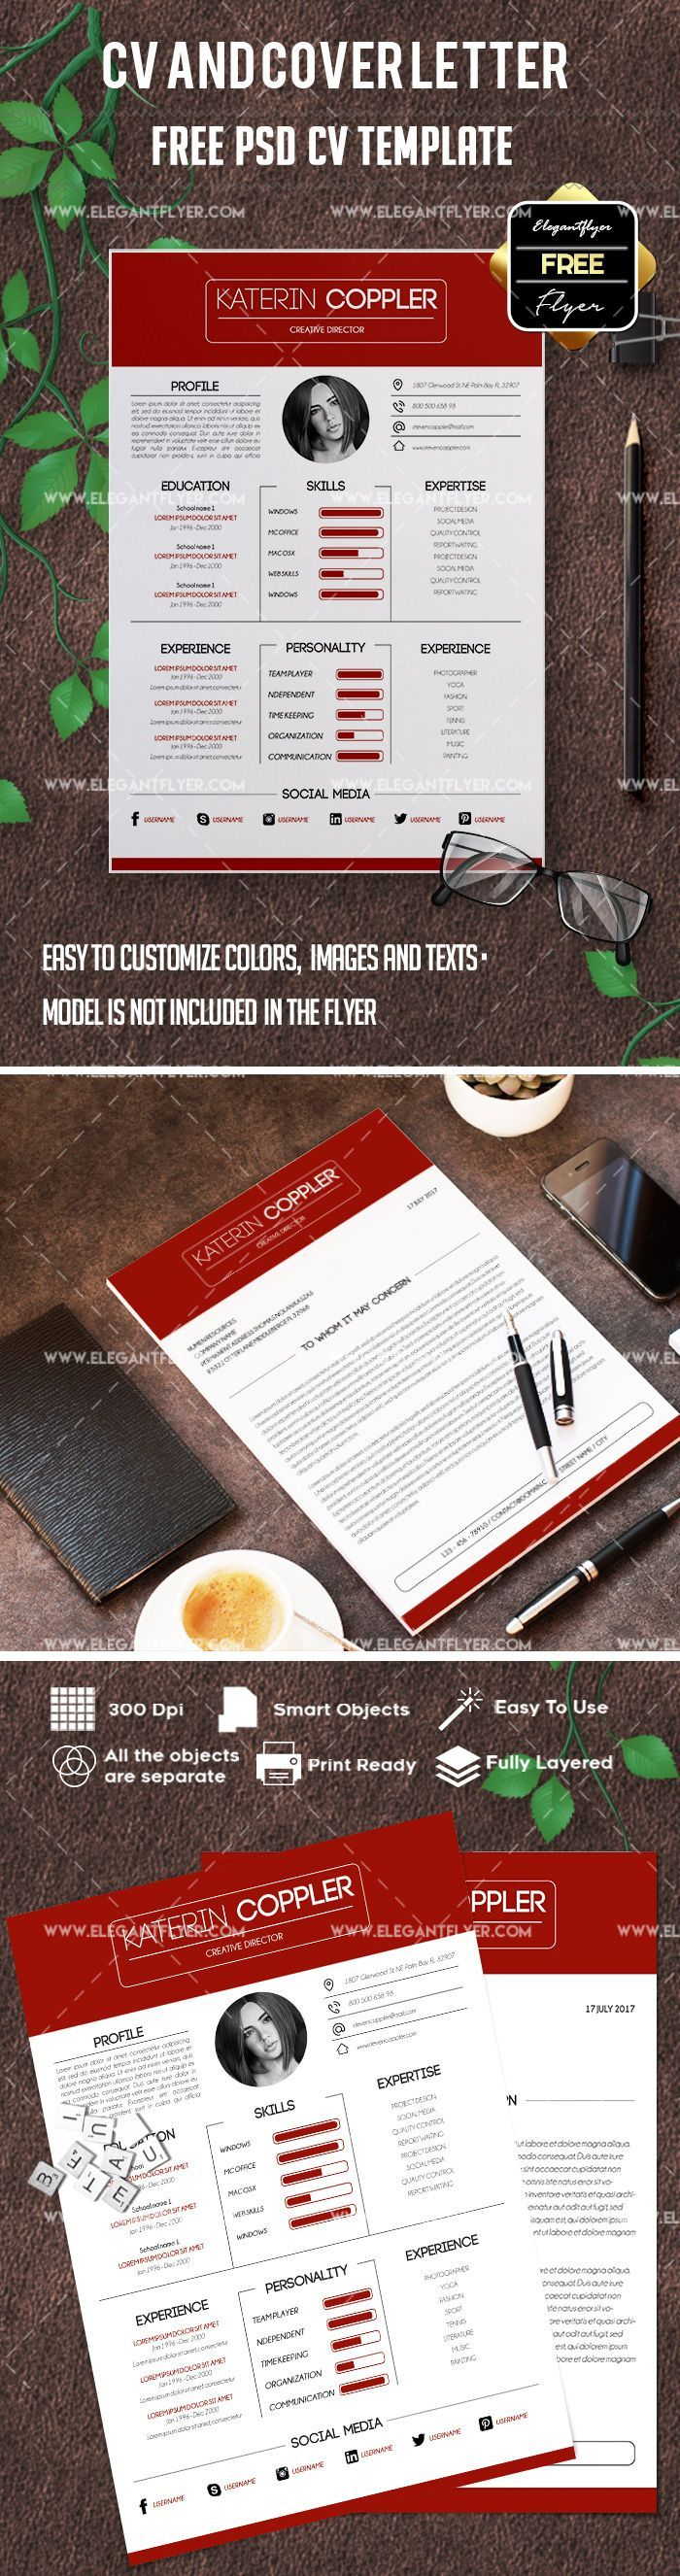 Cv Templates Pdf%0A https   www elegantflyer com freeresumetemplates